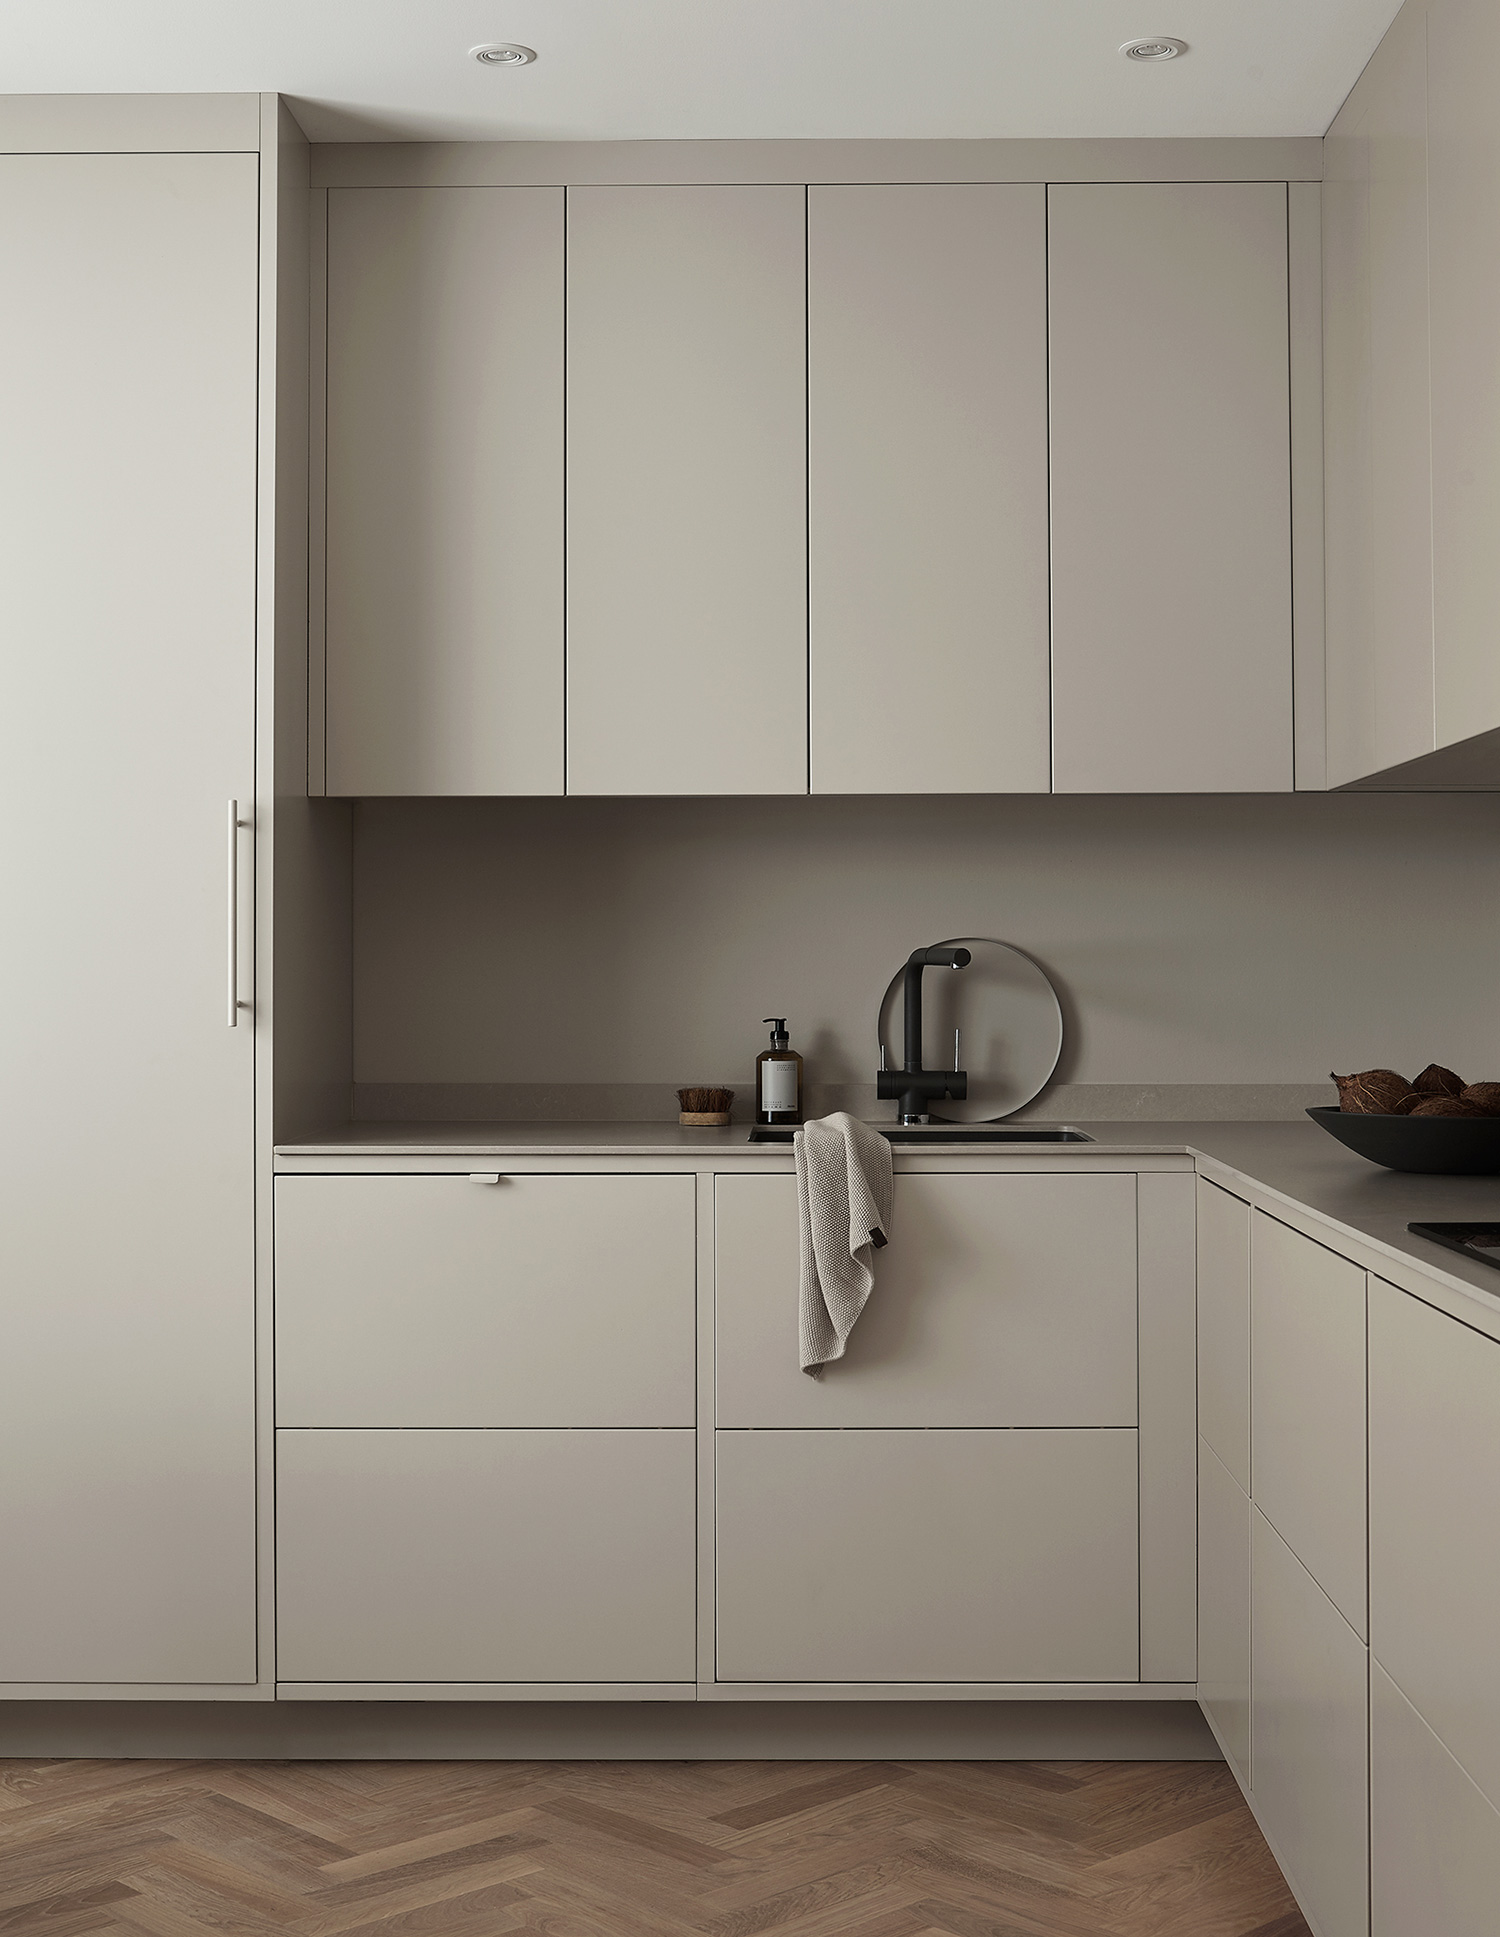 What is the price of a kitchen? -